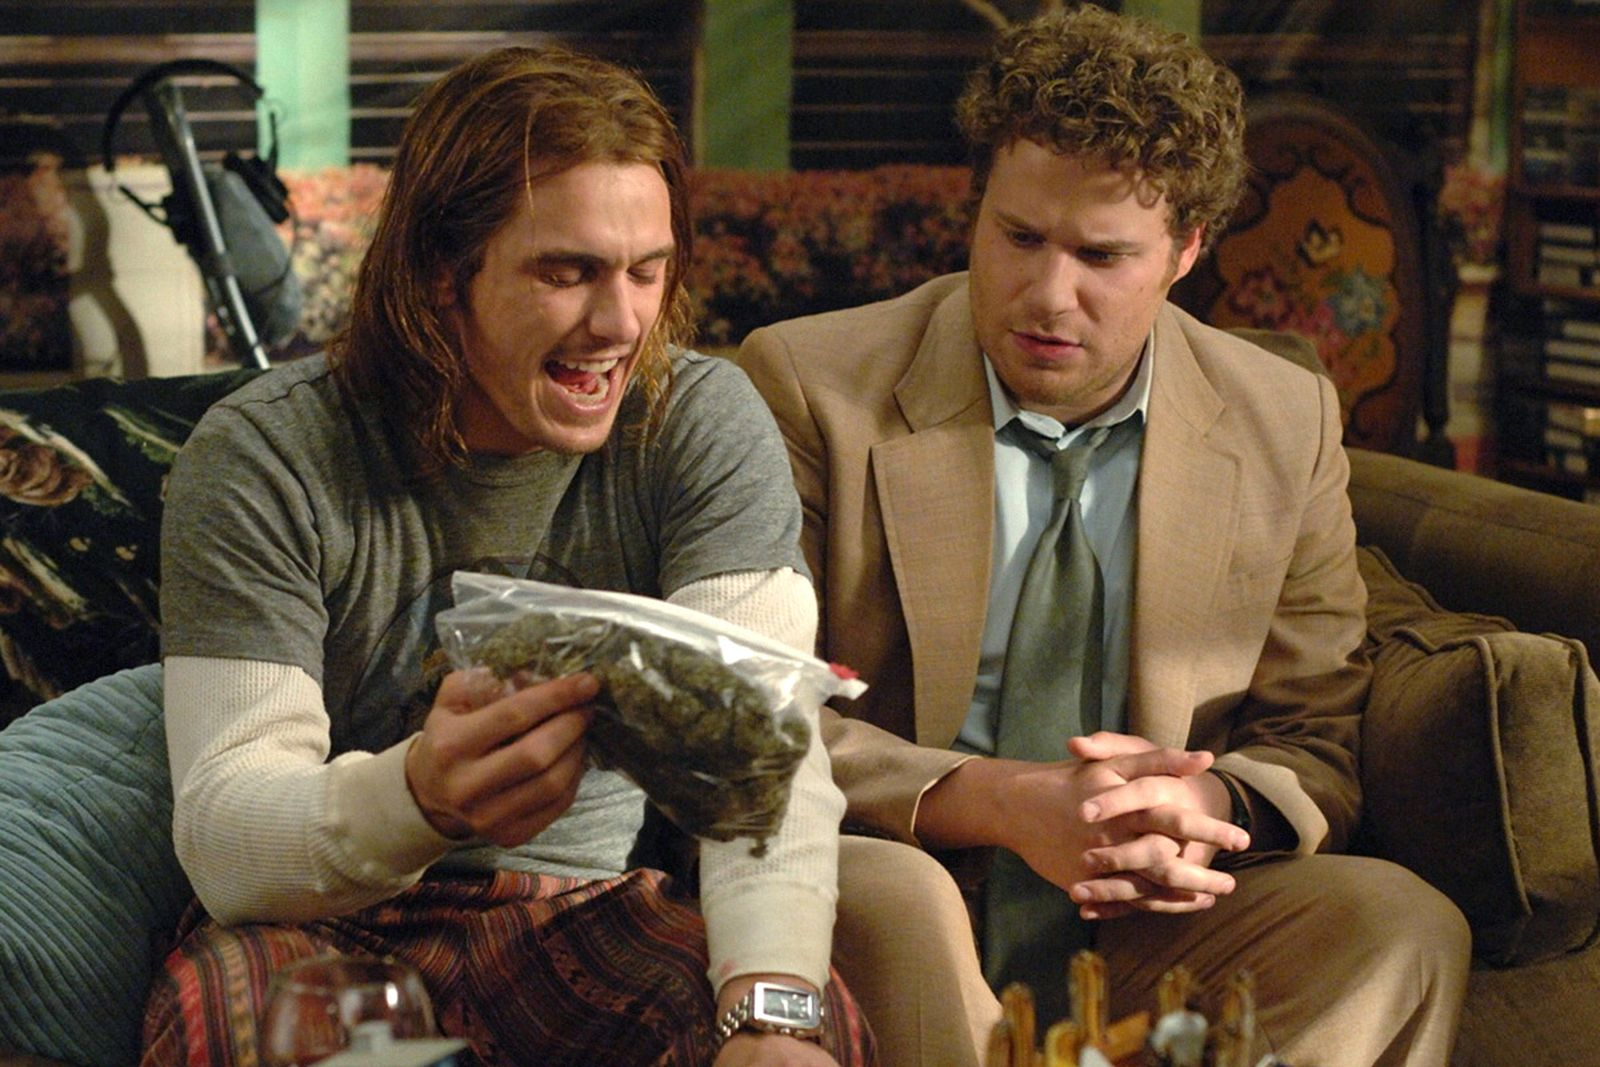 stoner movies 4 20 main Fast Times at Ridgemont High Pineapple Express True Romance